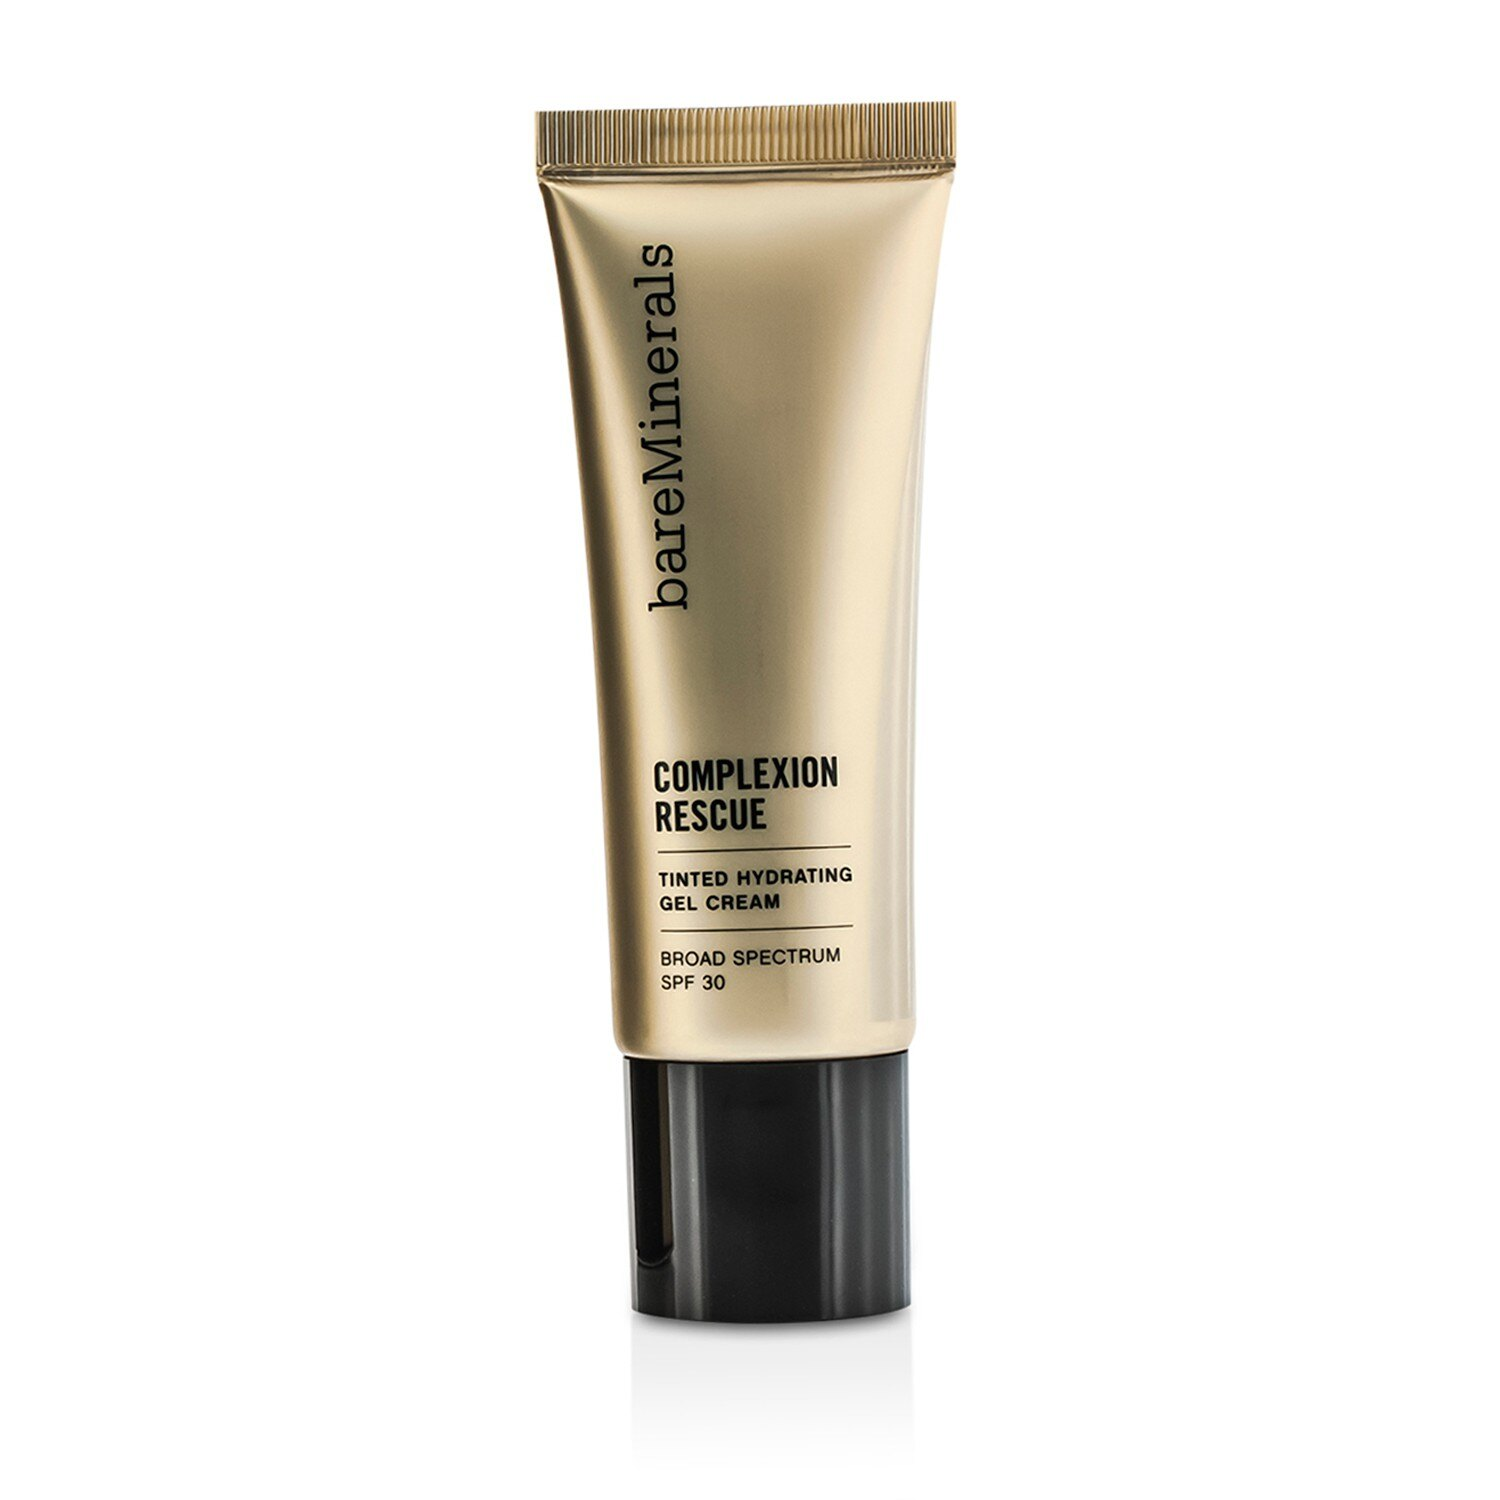 BareMinerals - 礦物鎖水粉底乳霜SPF30 Complexion Rescue Tinted Hydrating Gel Cream